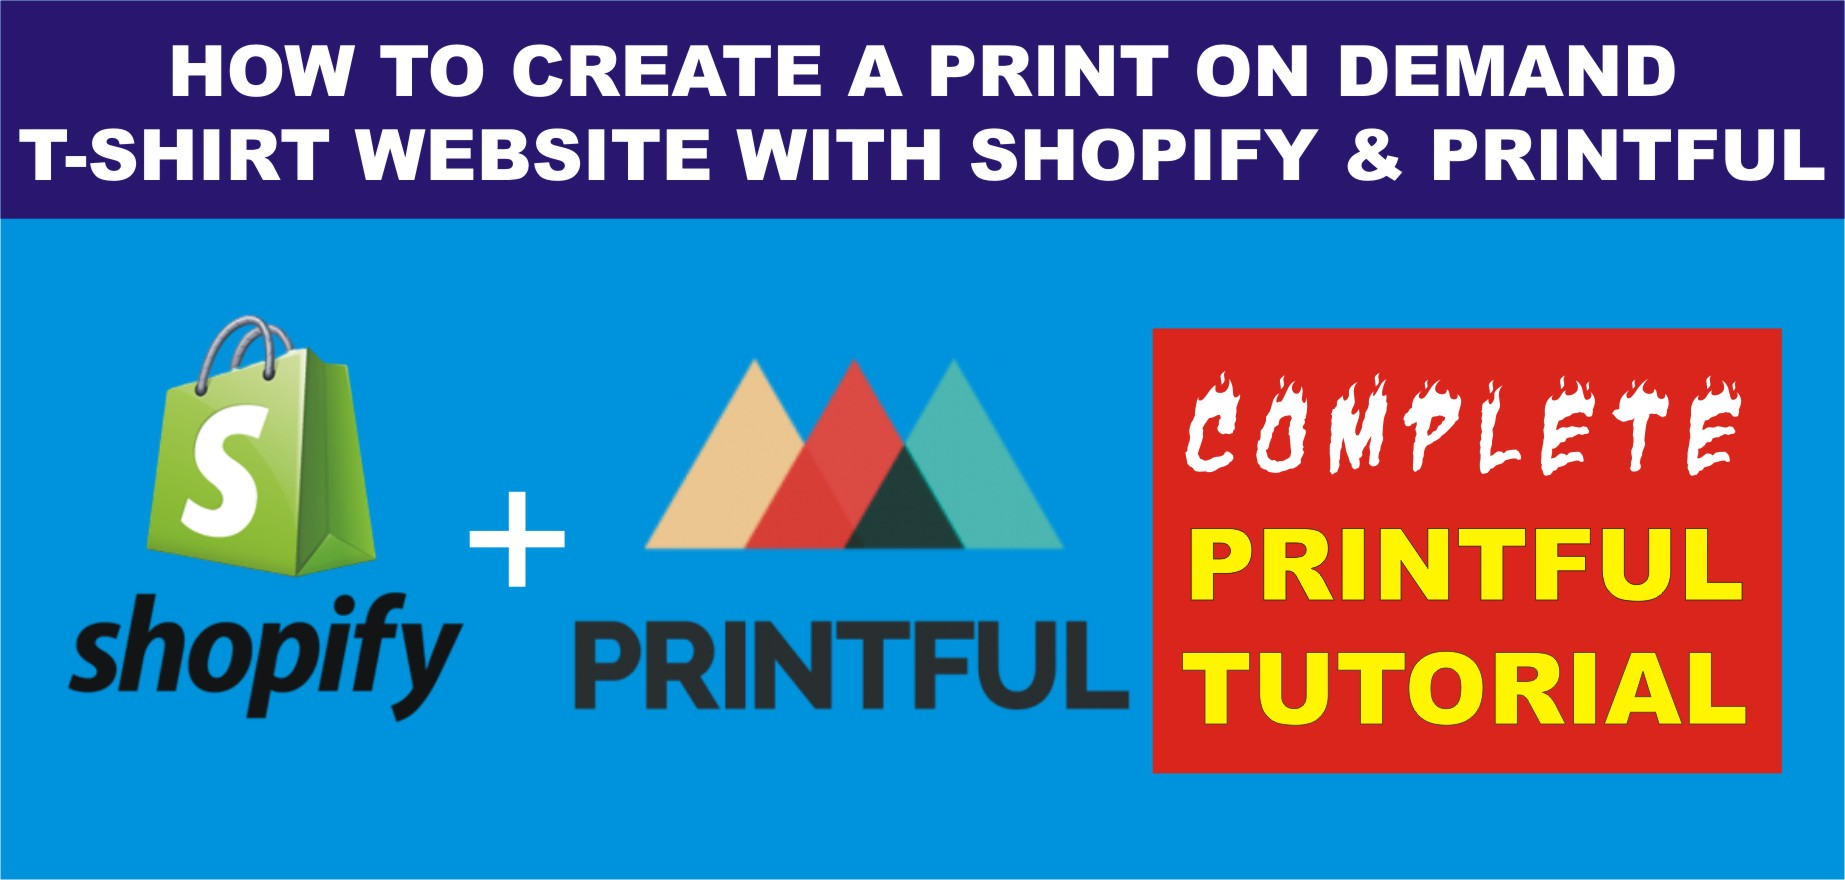 How to Create a Print-On-Demand Website with Shopify and Printful Complete Printful Tutorial